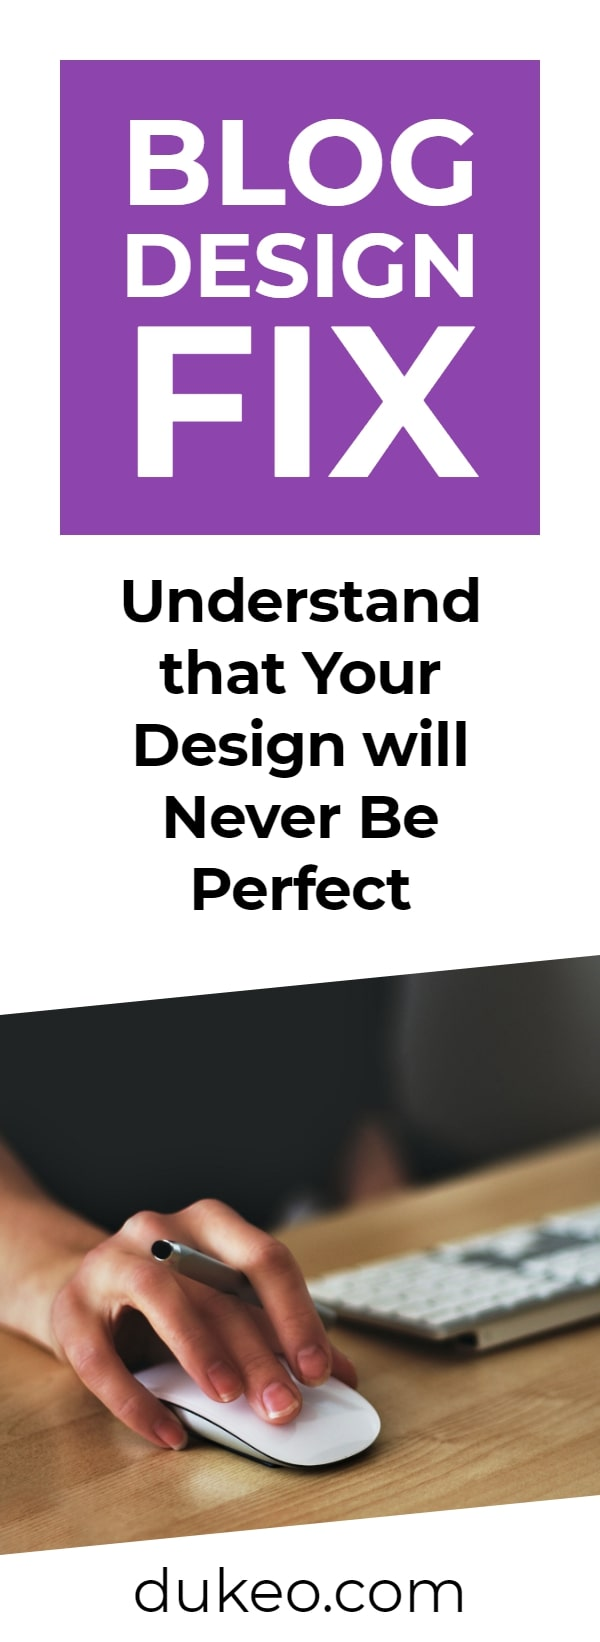 Blog Design Fix: Understand That Your Design Will Never Be Perfect